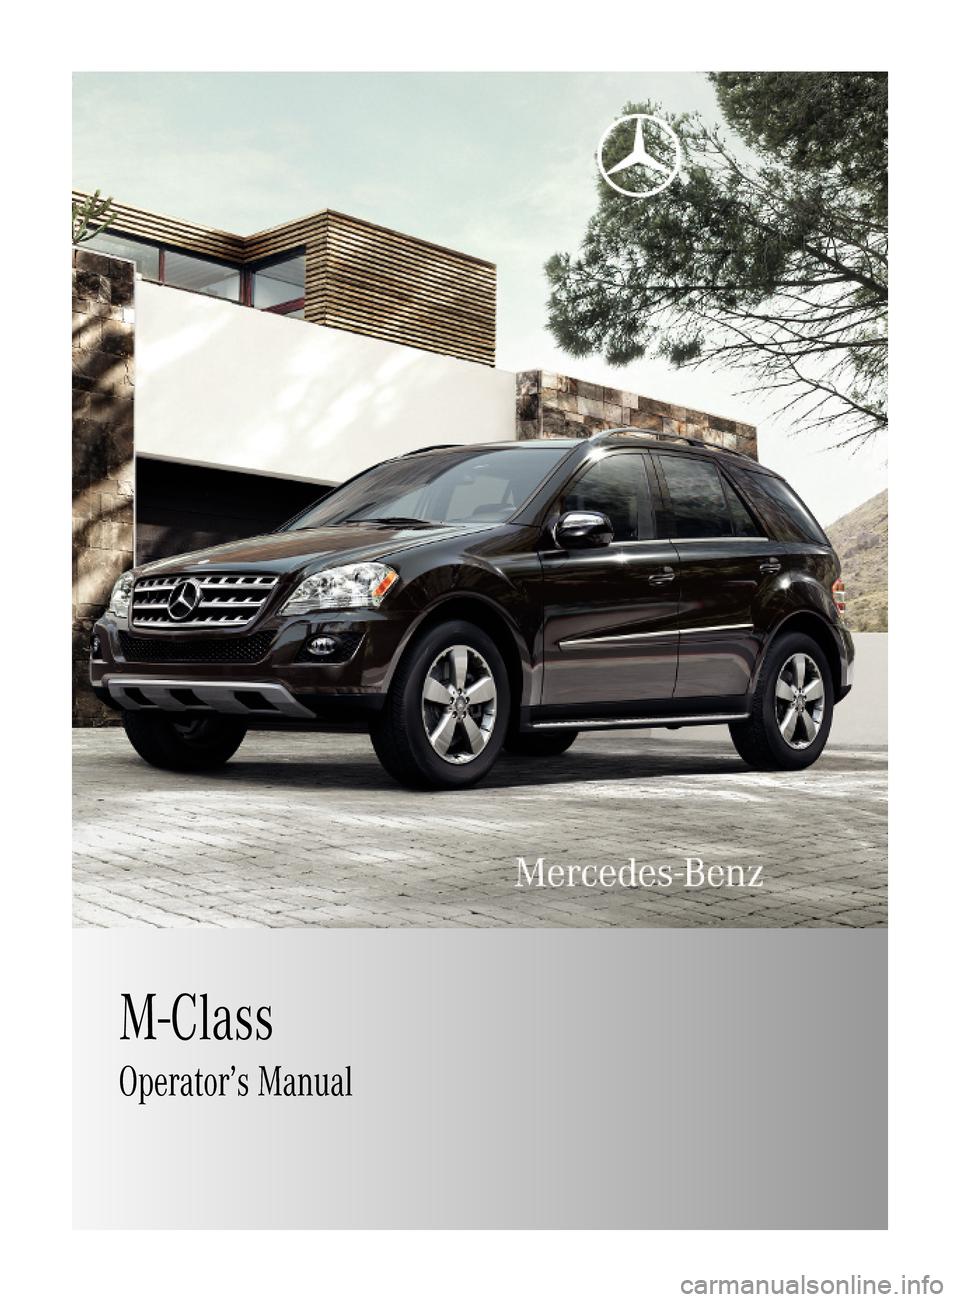 Mercedes Benz Ml350 2010 W164 Owner S Manual